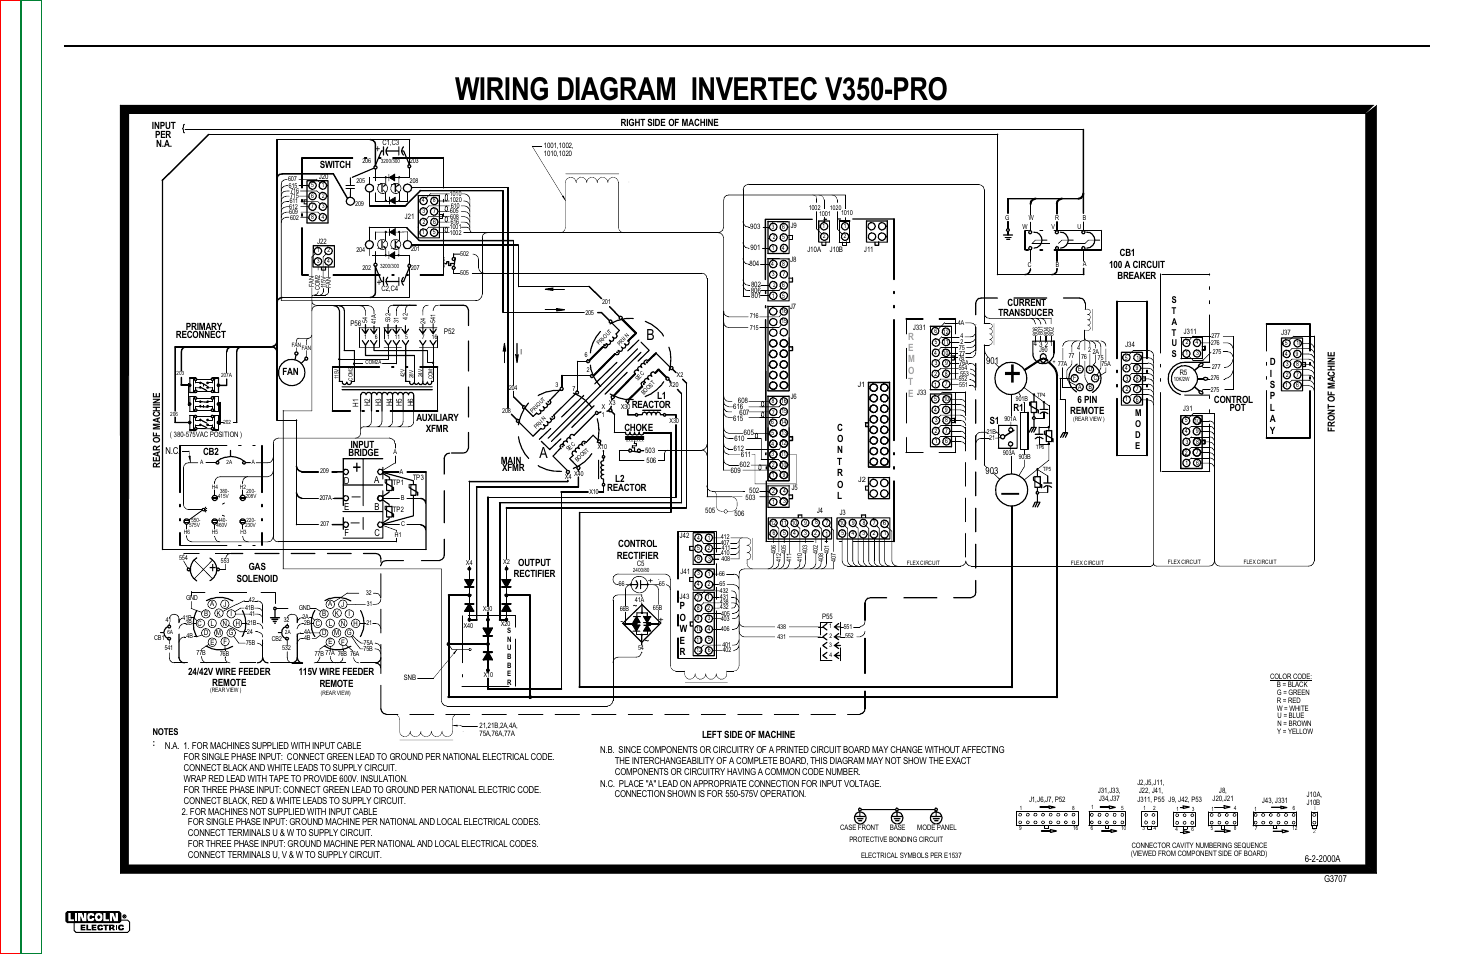 hight resolution of wrg 6786 lincoln 14 0 hd wiring diagram lincoln 14 0 hd wiring diagram